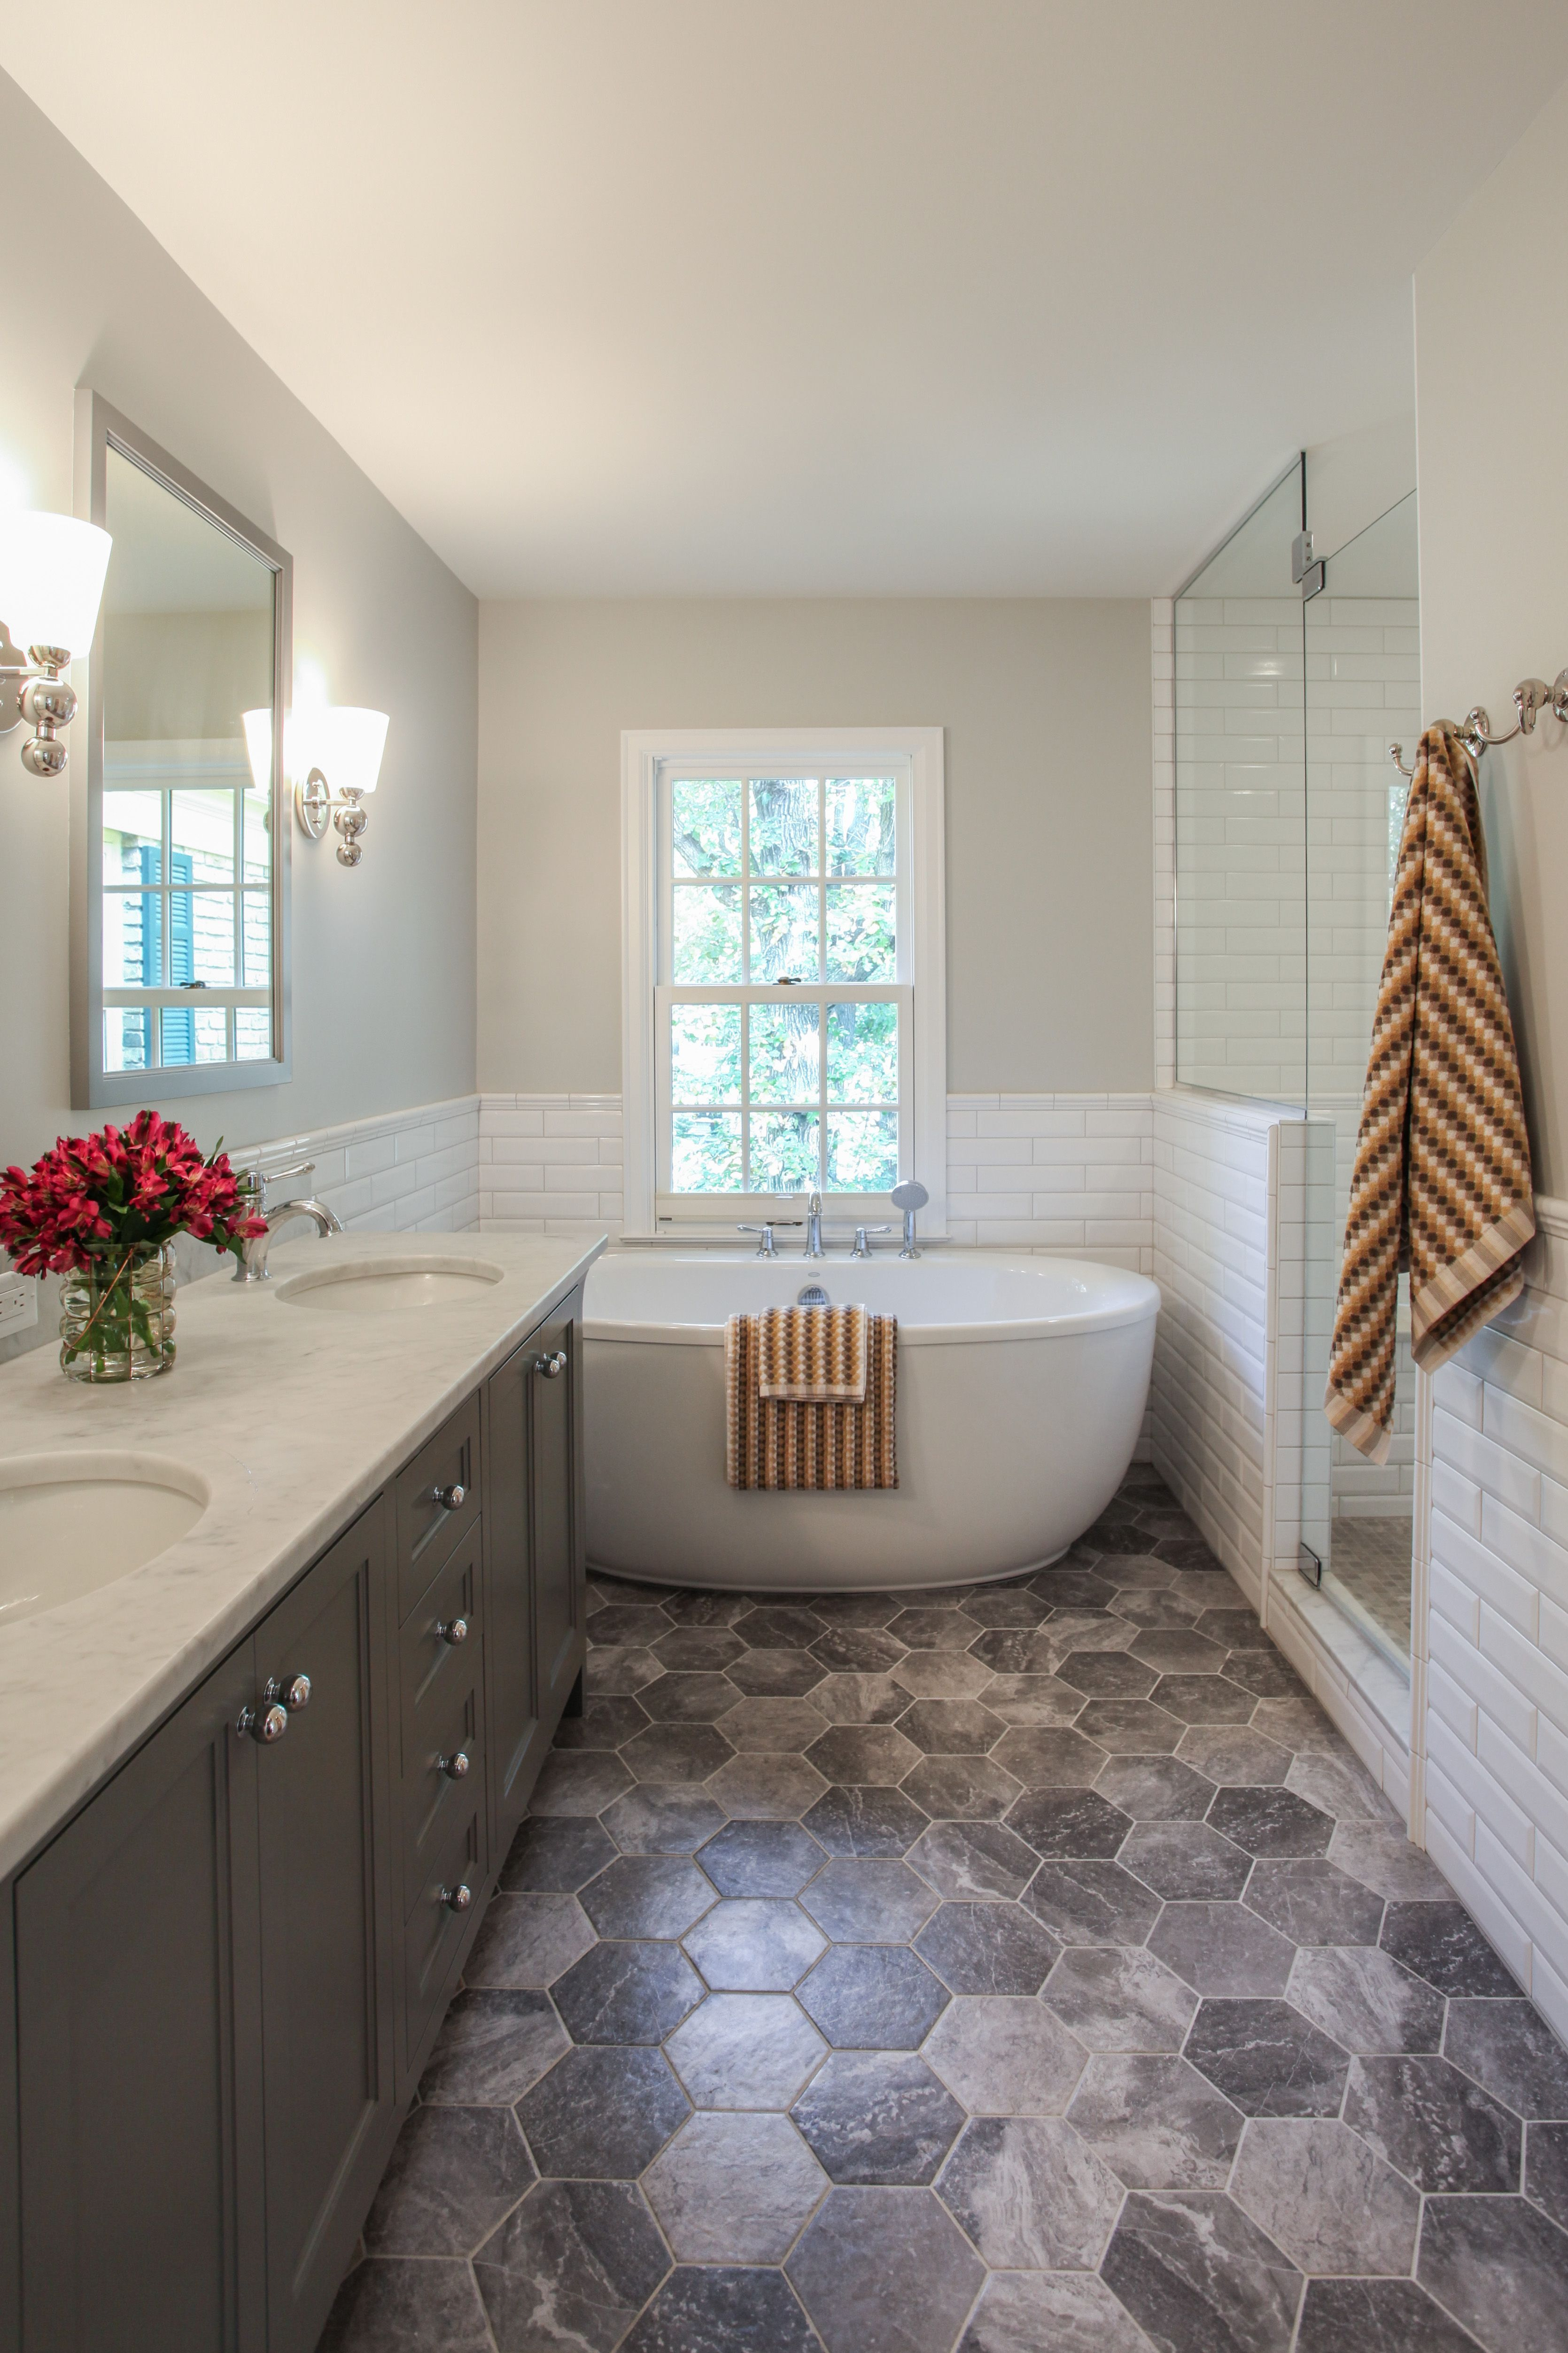 Bathroom Remodeling Ideas Before And After, Master Bathroom Remodel Ideas,